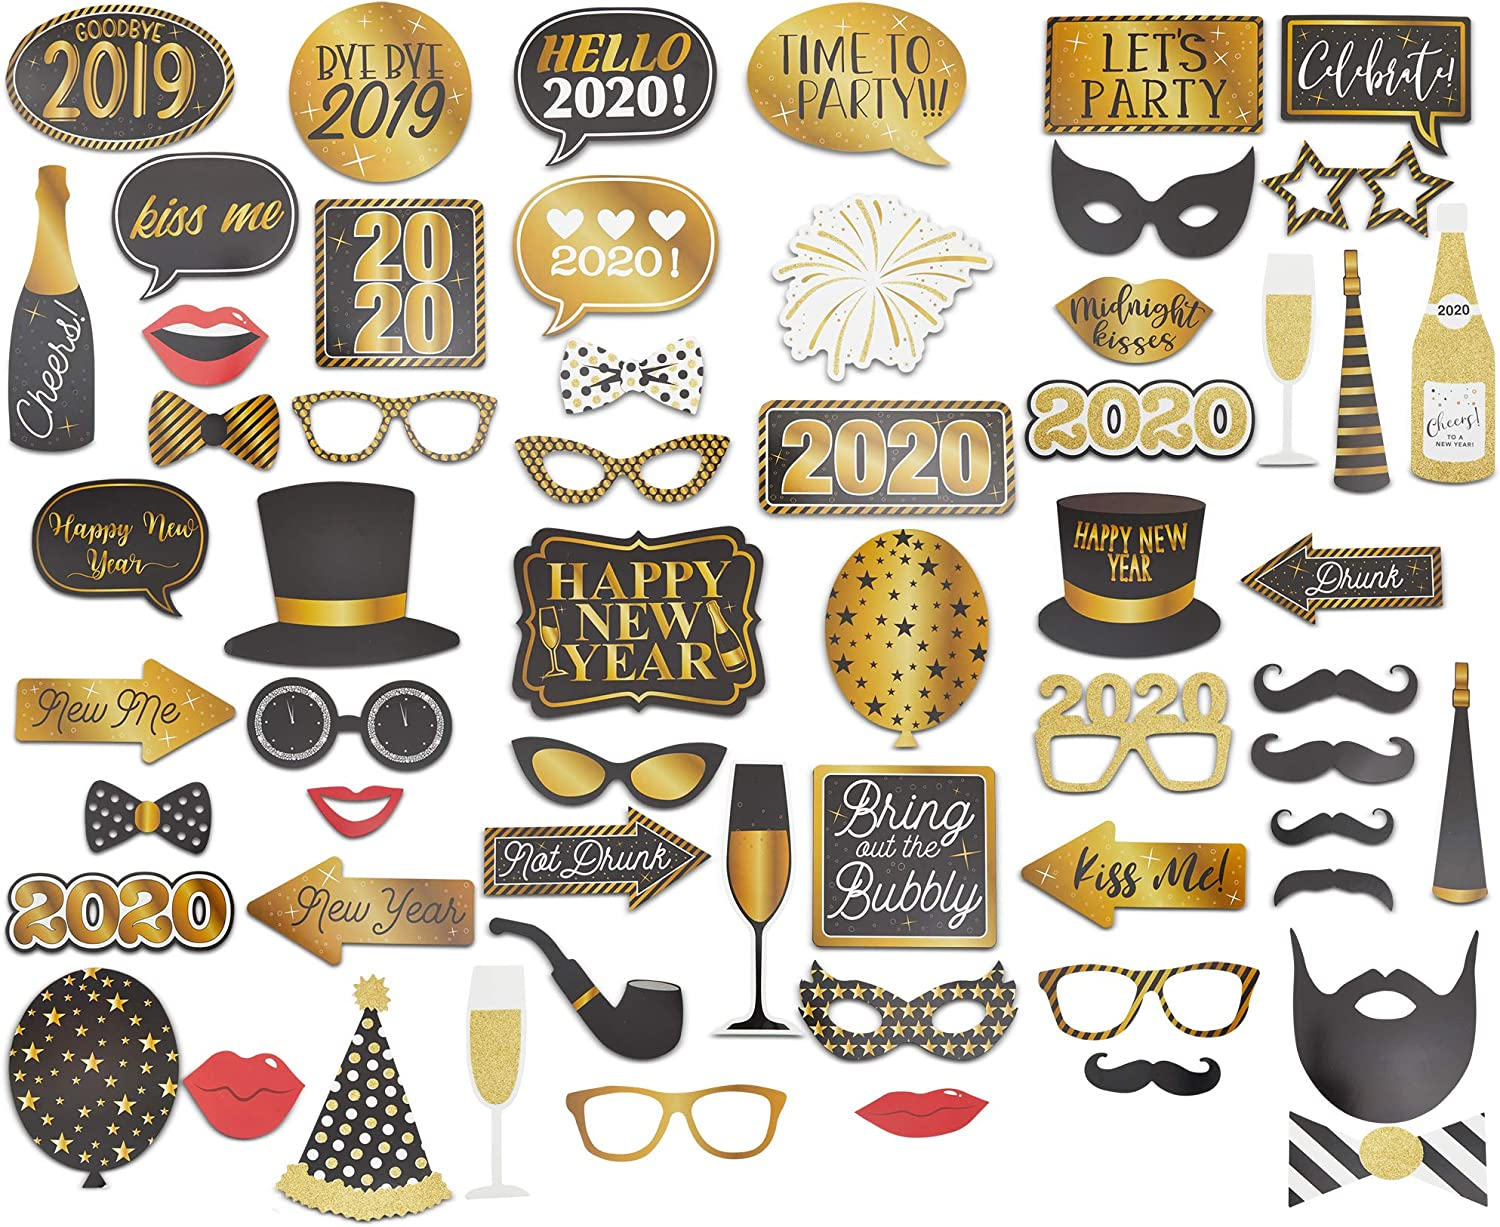 New Years Party Supplies and Decorations DIY Photo Booth Props for Kids and Adults 2020 New Years Photo Booth Props Glitter New Years Eve Photo Booth Props Pack of 26